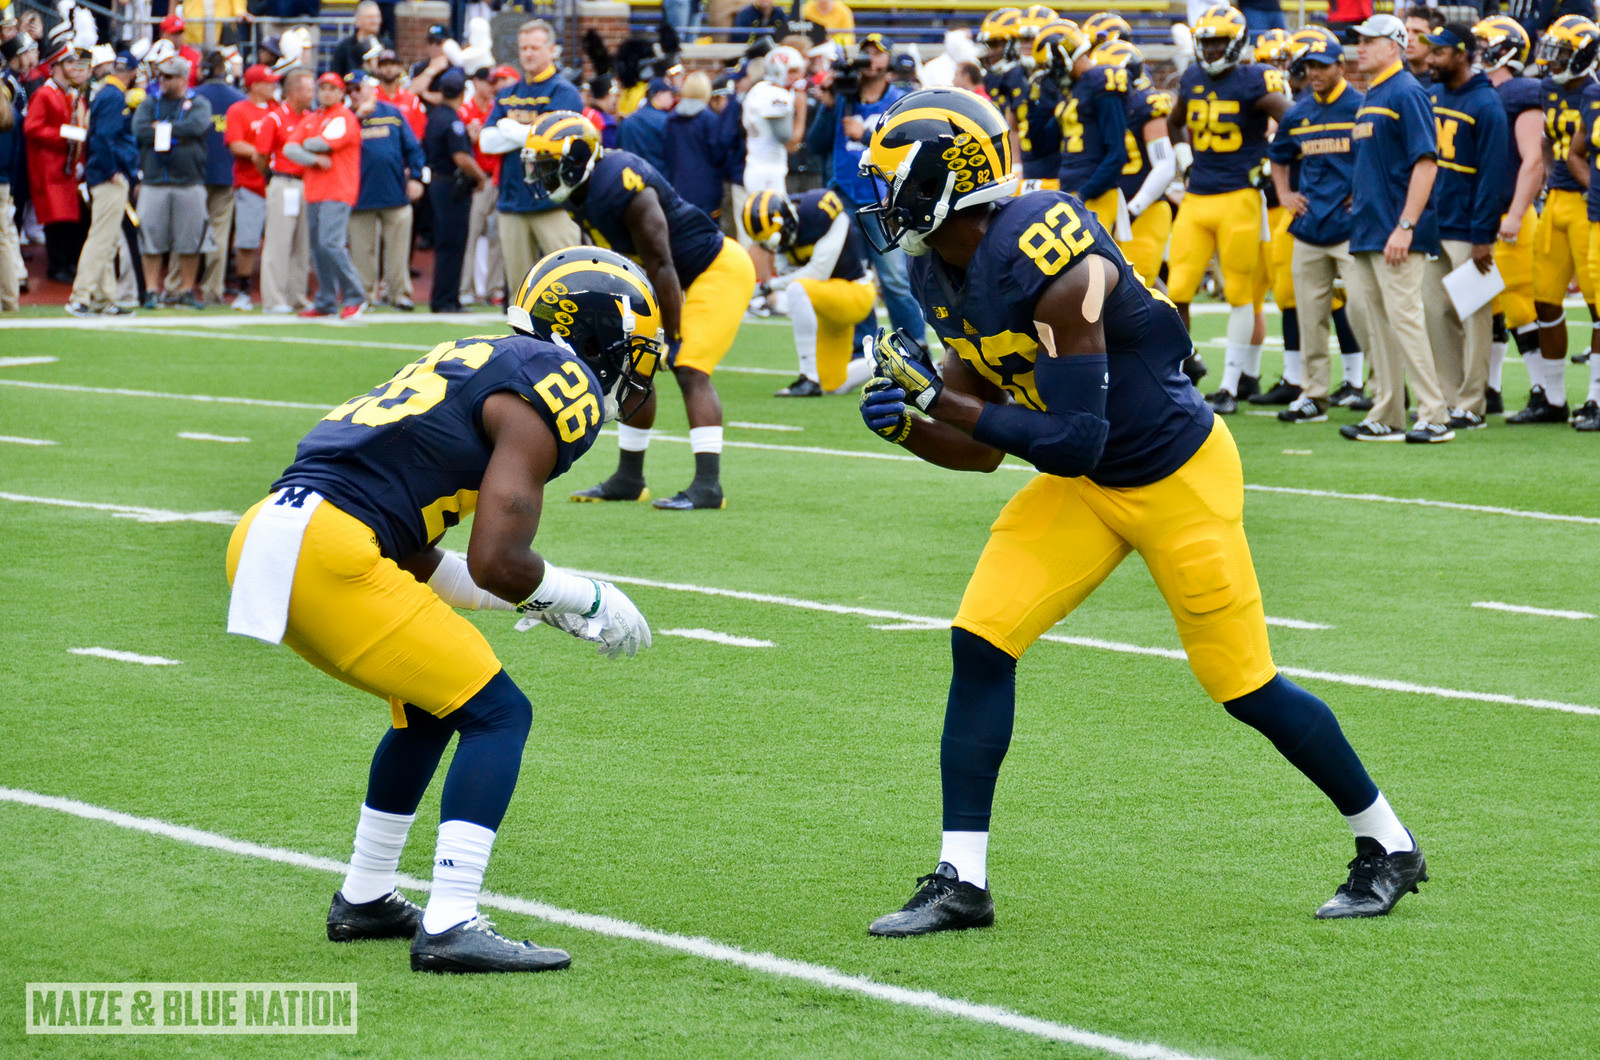 preview michigan s biggest strengths and weaknesses maize 2016 preview michigan s biggest strengths and weaknesses maize and blue nation michigan football blog